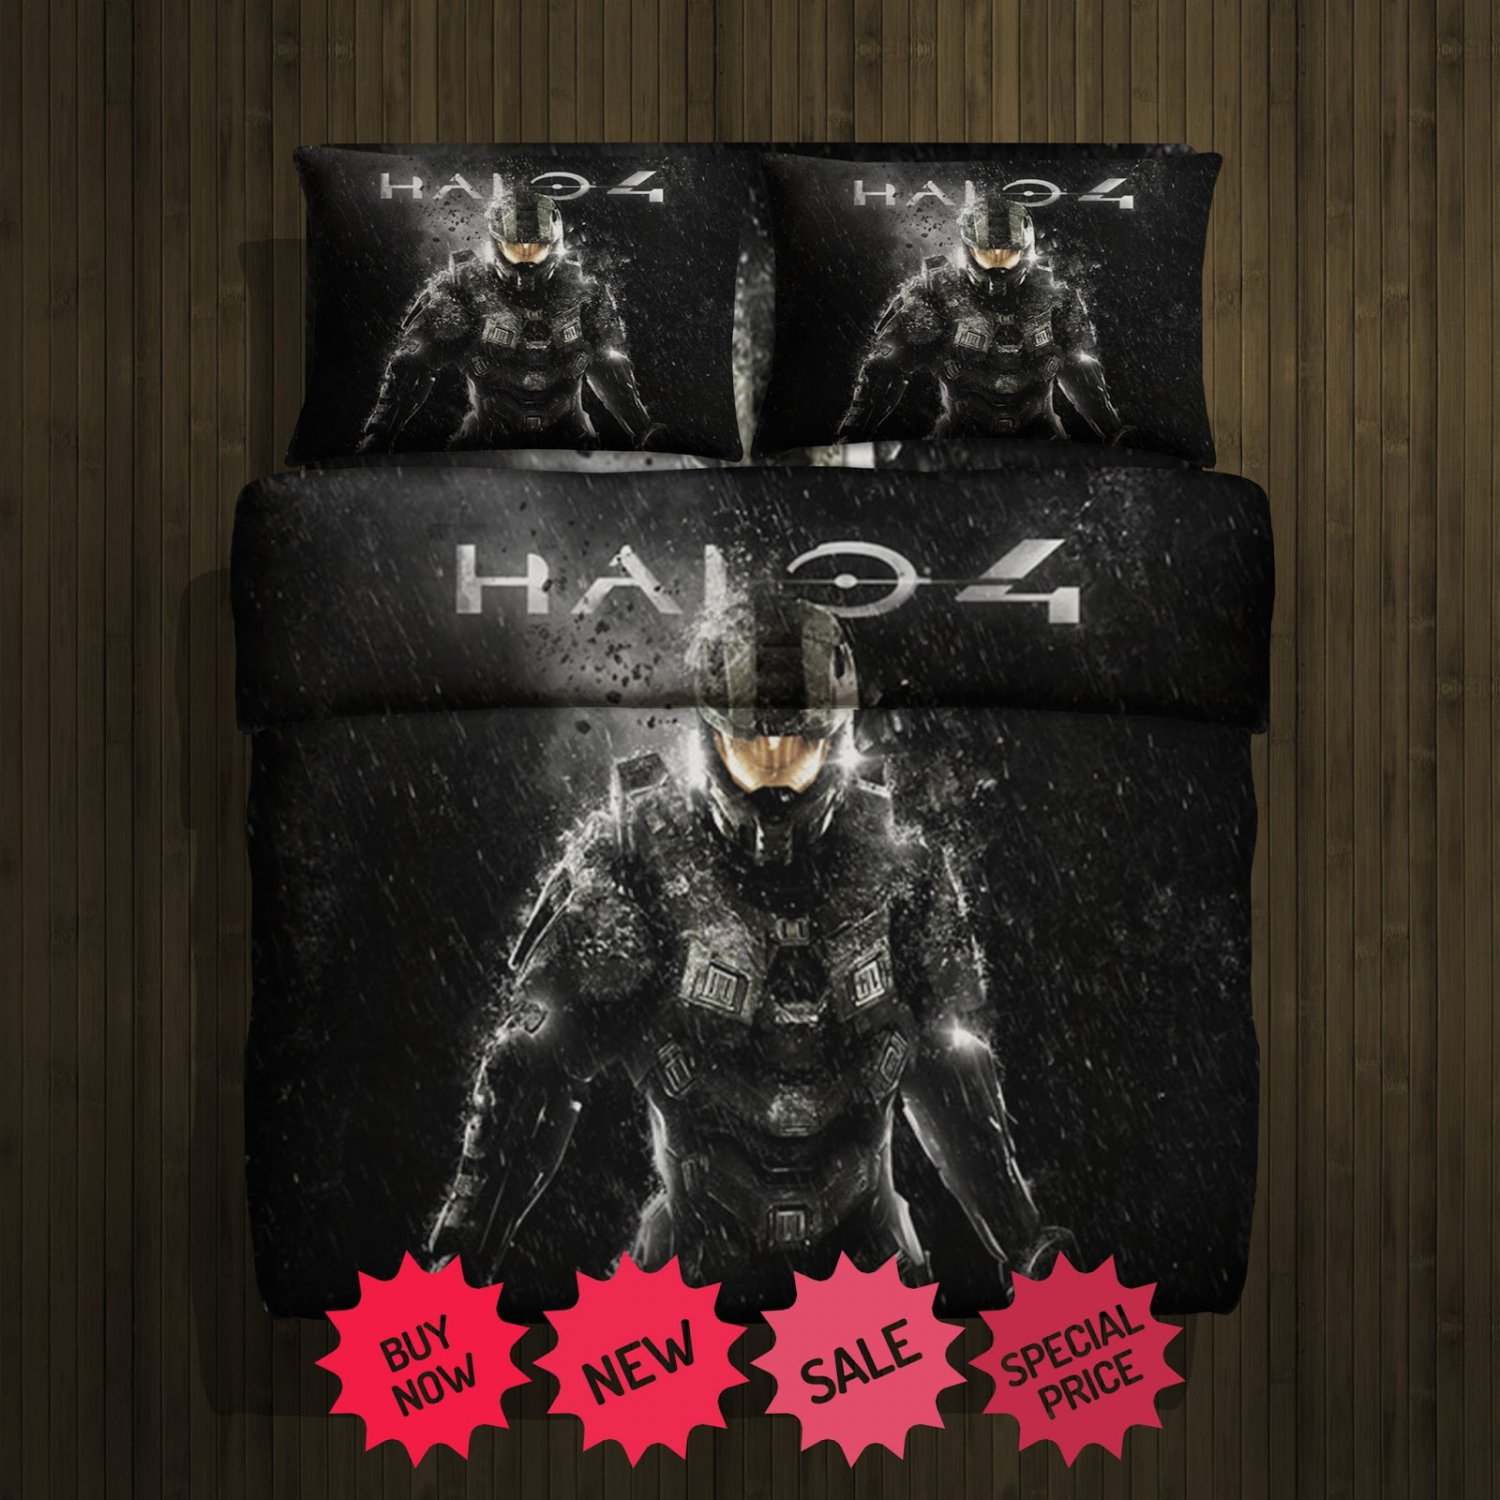 Halo 4 Fleece Blanket Large & 2 Pillow Cases #85700294,85700297(2)